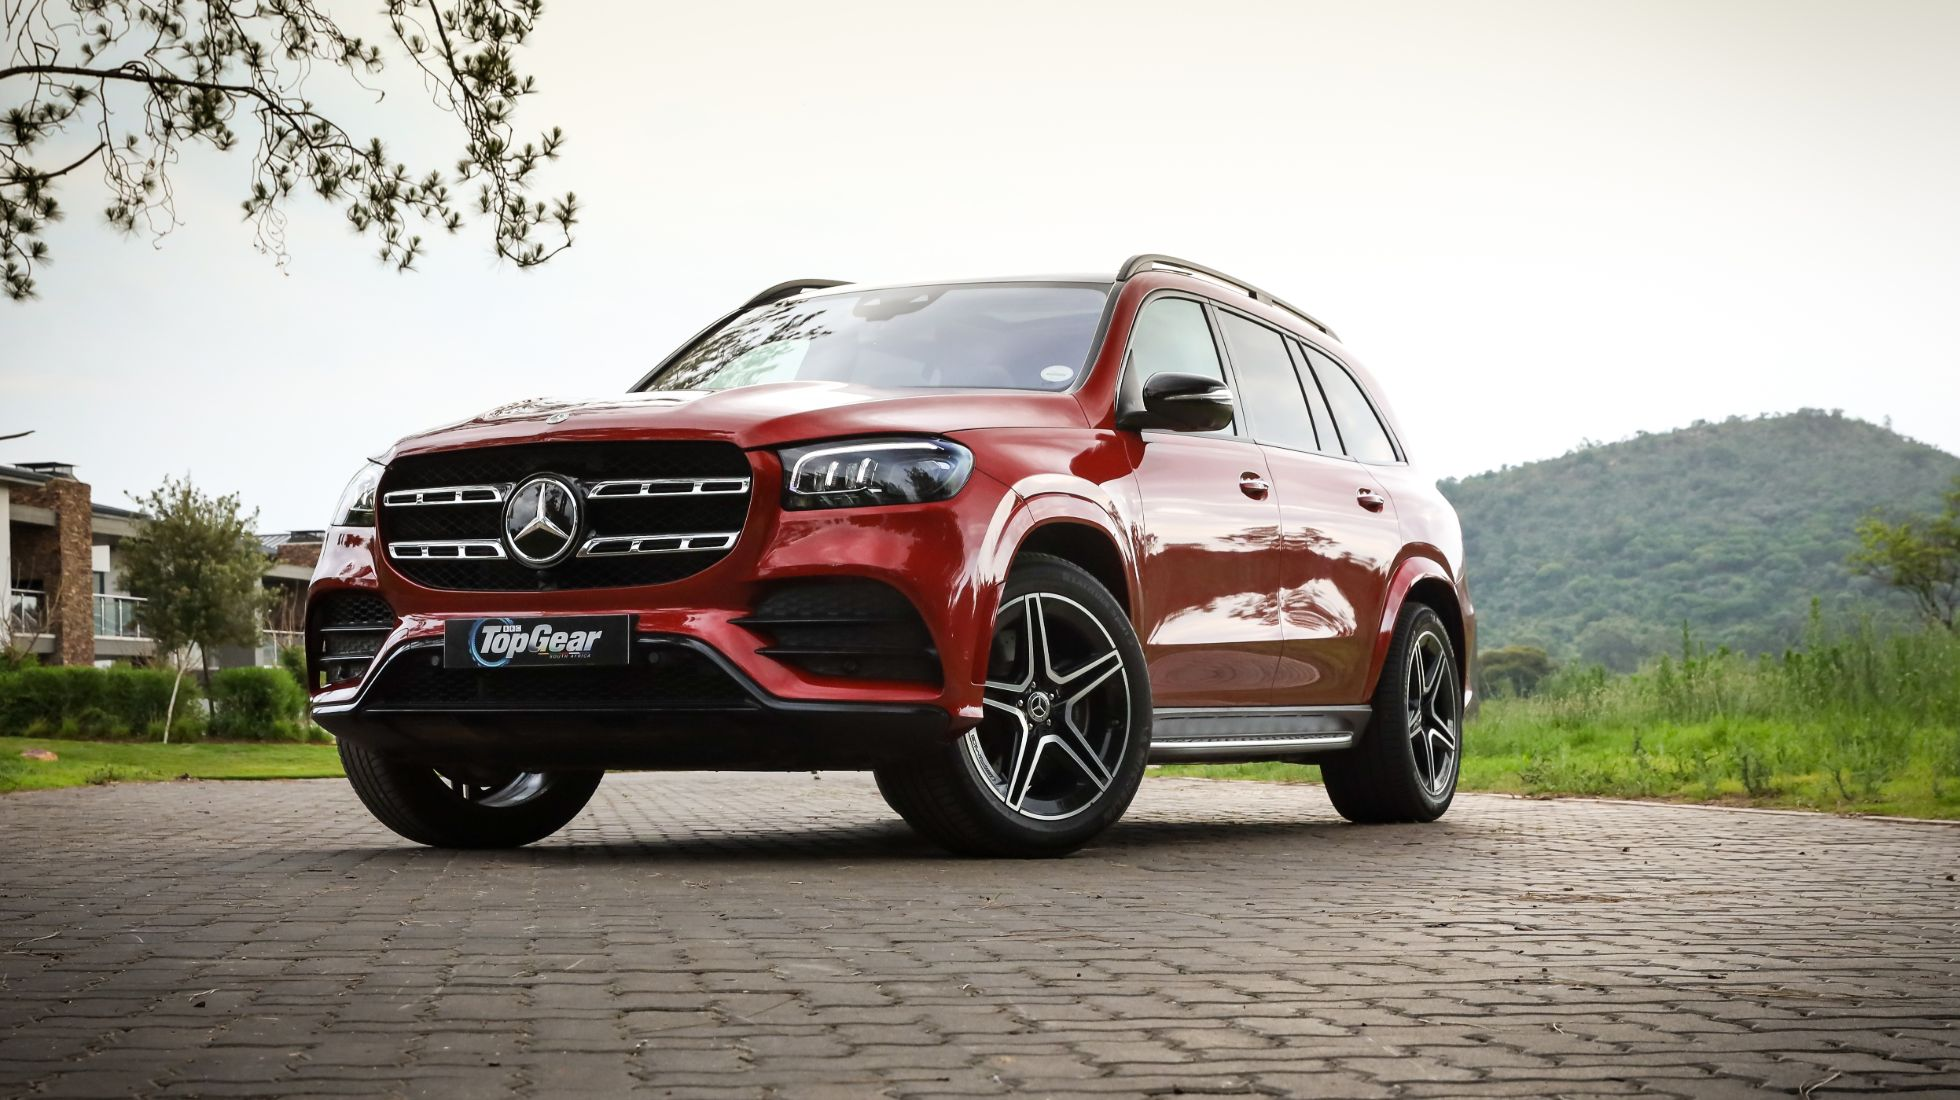 Merc's lofty GLS 580 is a luxuriant land yacht